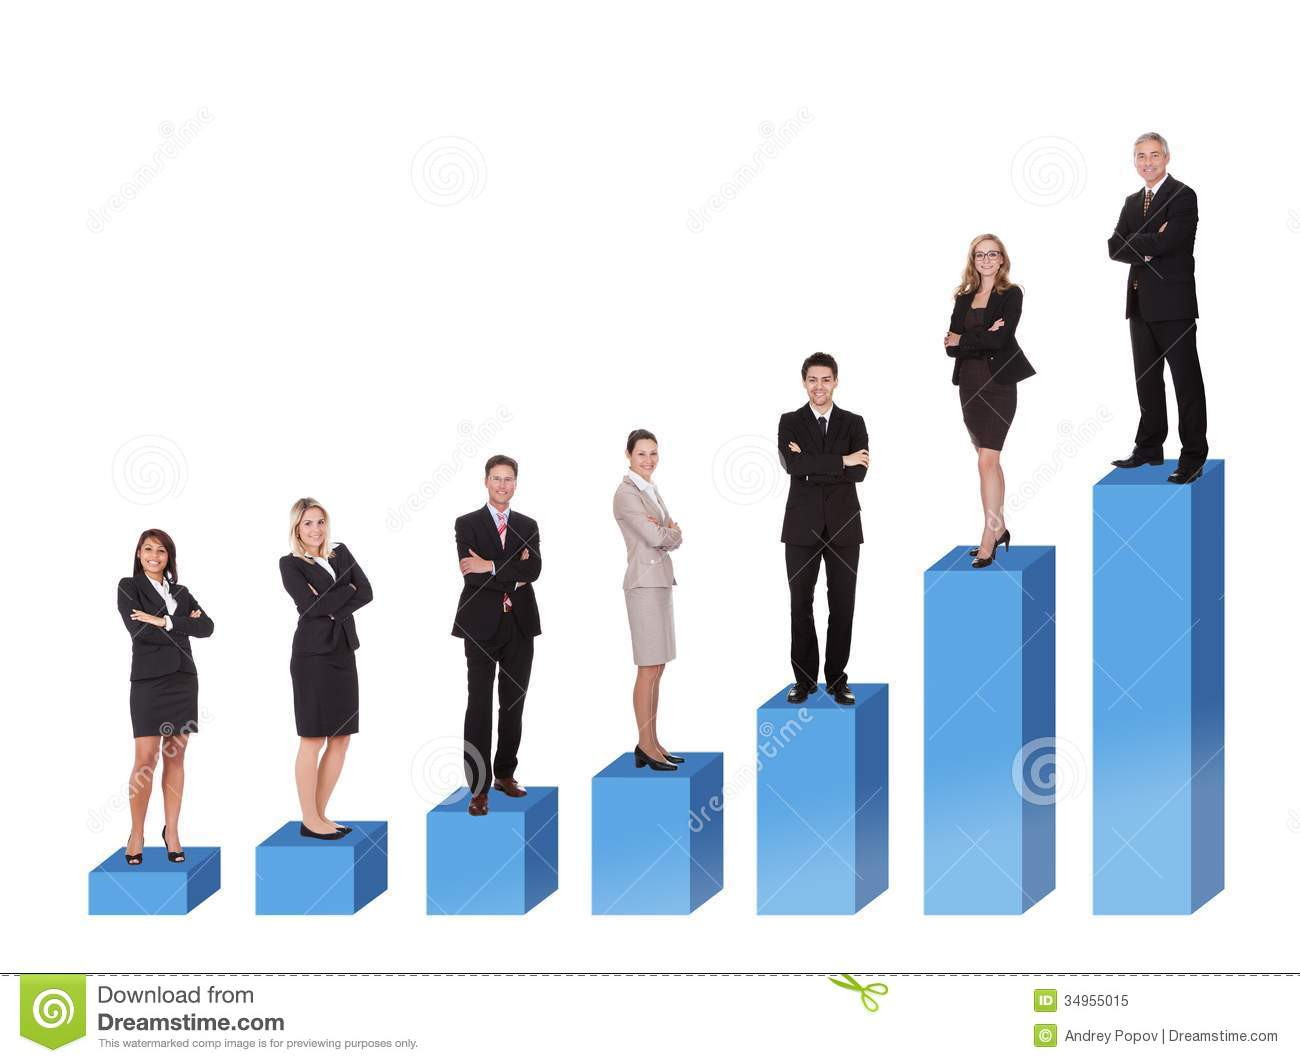 Career Ladder Royalty Free Stock Photo - Image: 34955015